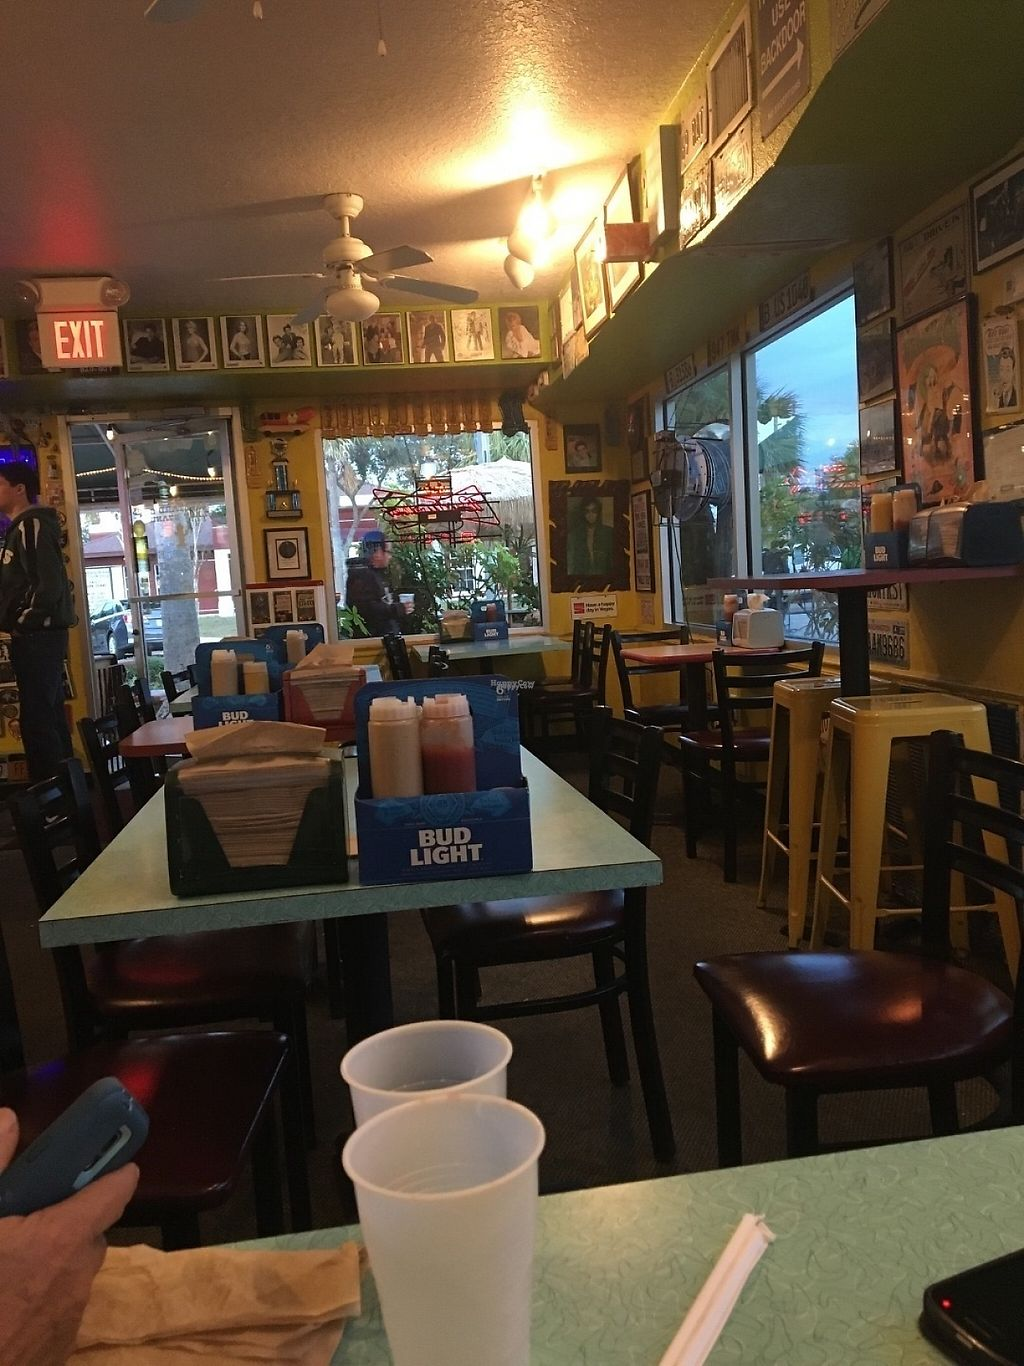 """Photo of Mustard's Last Stand - New Haven Ave  by <a href=""""/members/profile/LaurenThew"""">LaurenThew</a> <br/>Mustards Last Stand <br/> January 29, 2017  - <a href='/contact/abuse/image/65151/219466'>Report</a>"""